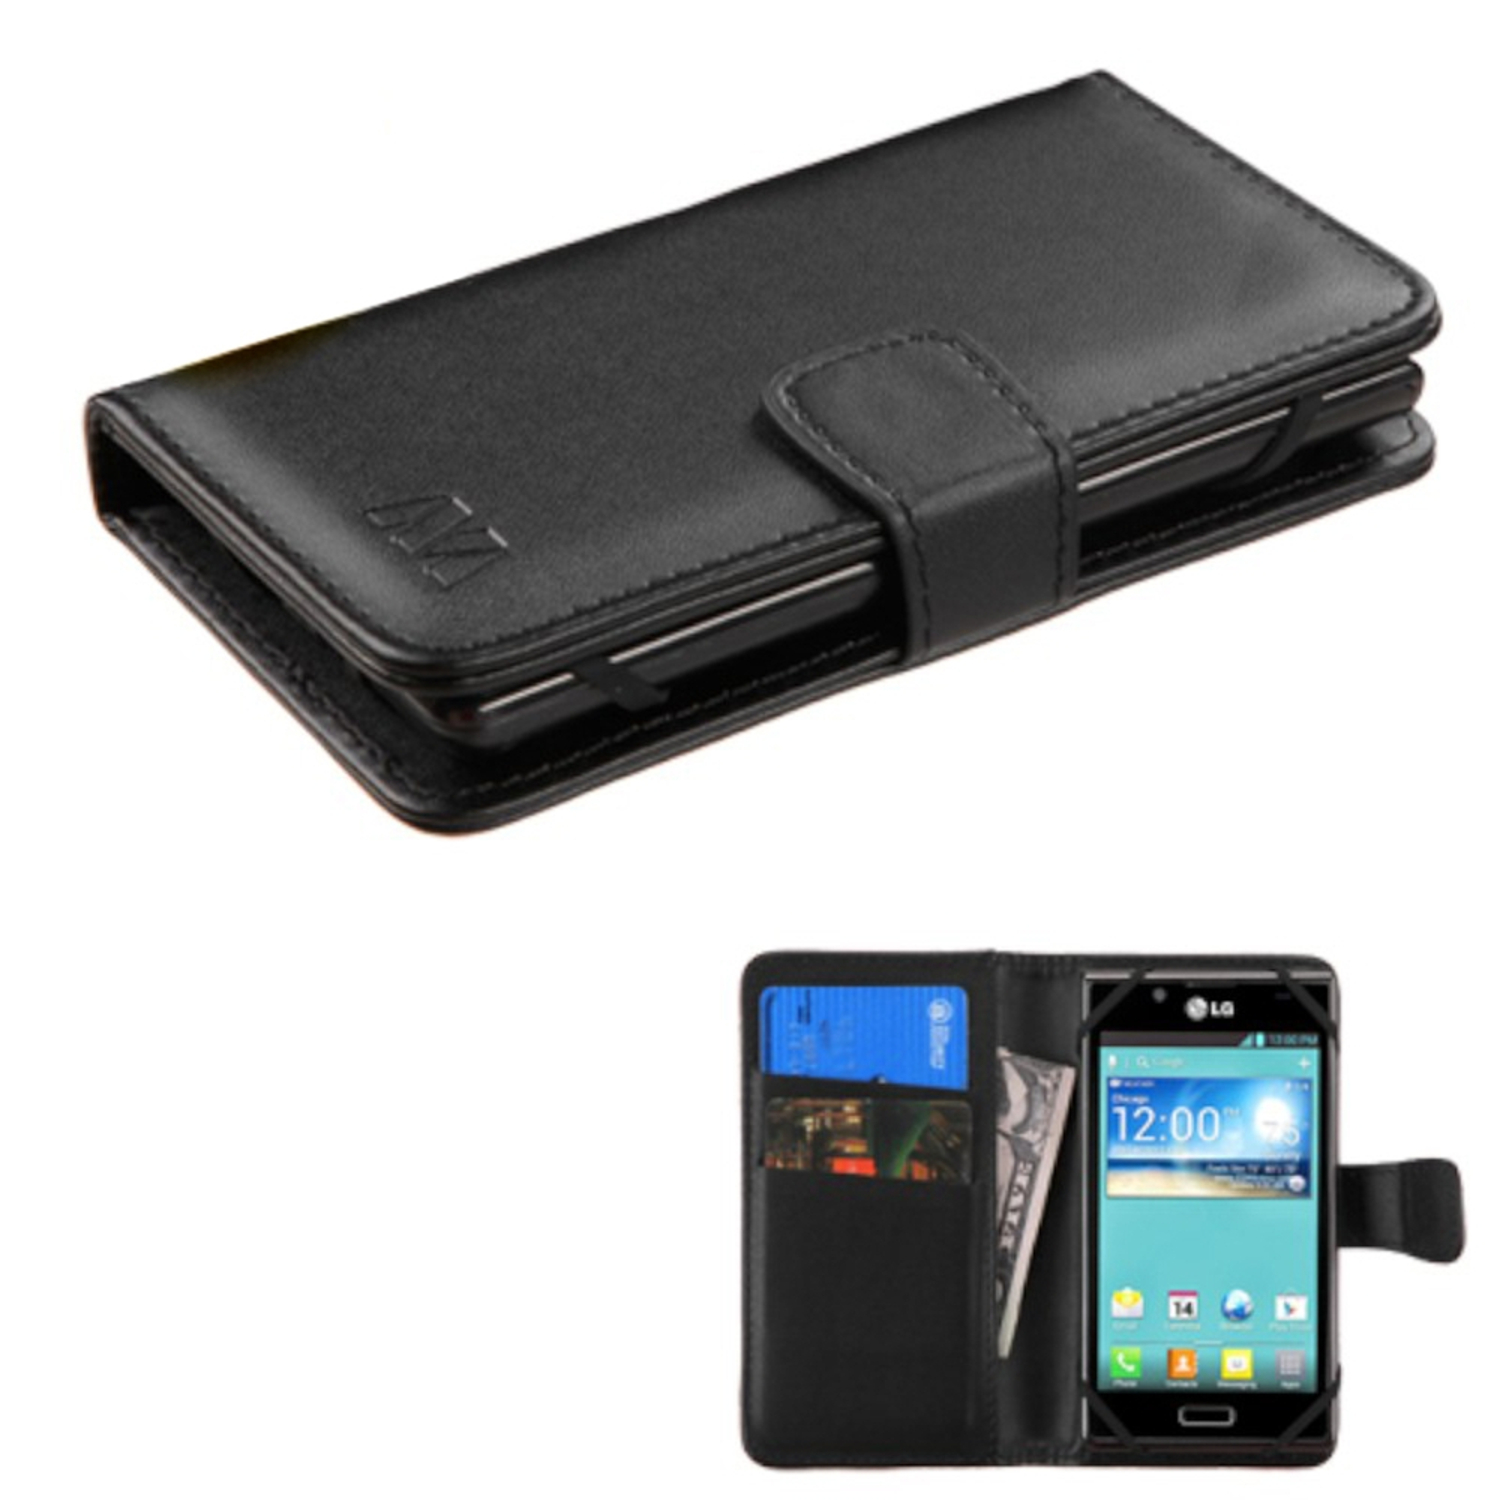 Insten Black Wallet Leather Case For iPhone SE 5S 5 5C/iPod Touch 5th 6th/LG Leon/ZTE Maven Overture 2 Fanfare Obsidian / Coolpad Rogue / Samsung Galaxy Core Prime Avant Note 7/Nokia Lumia 635 925 520